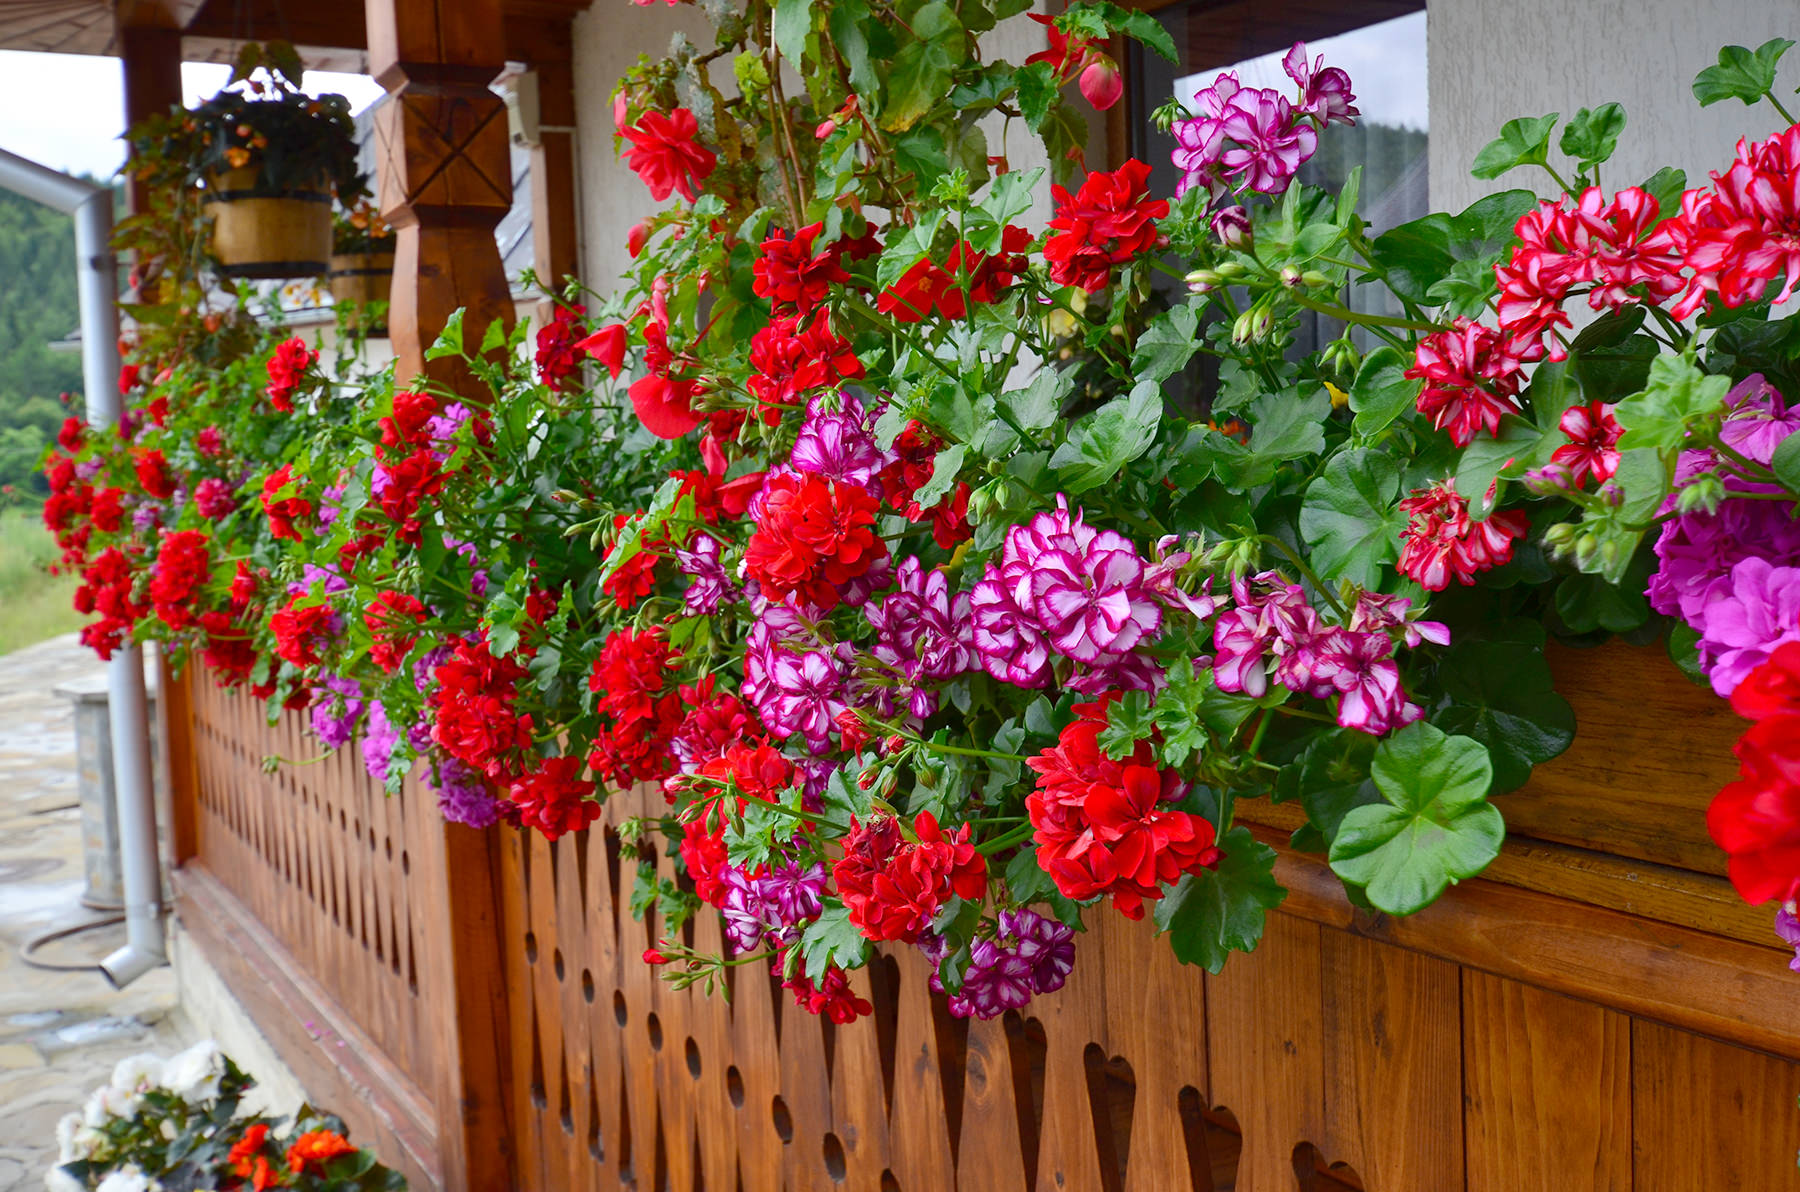 How to care for geraniums to have them flourishing on your balcony or porch - Care geraniums flourishing balcony porch ...